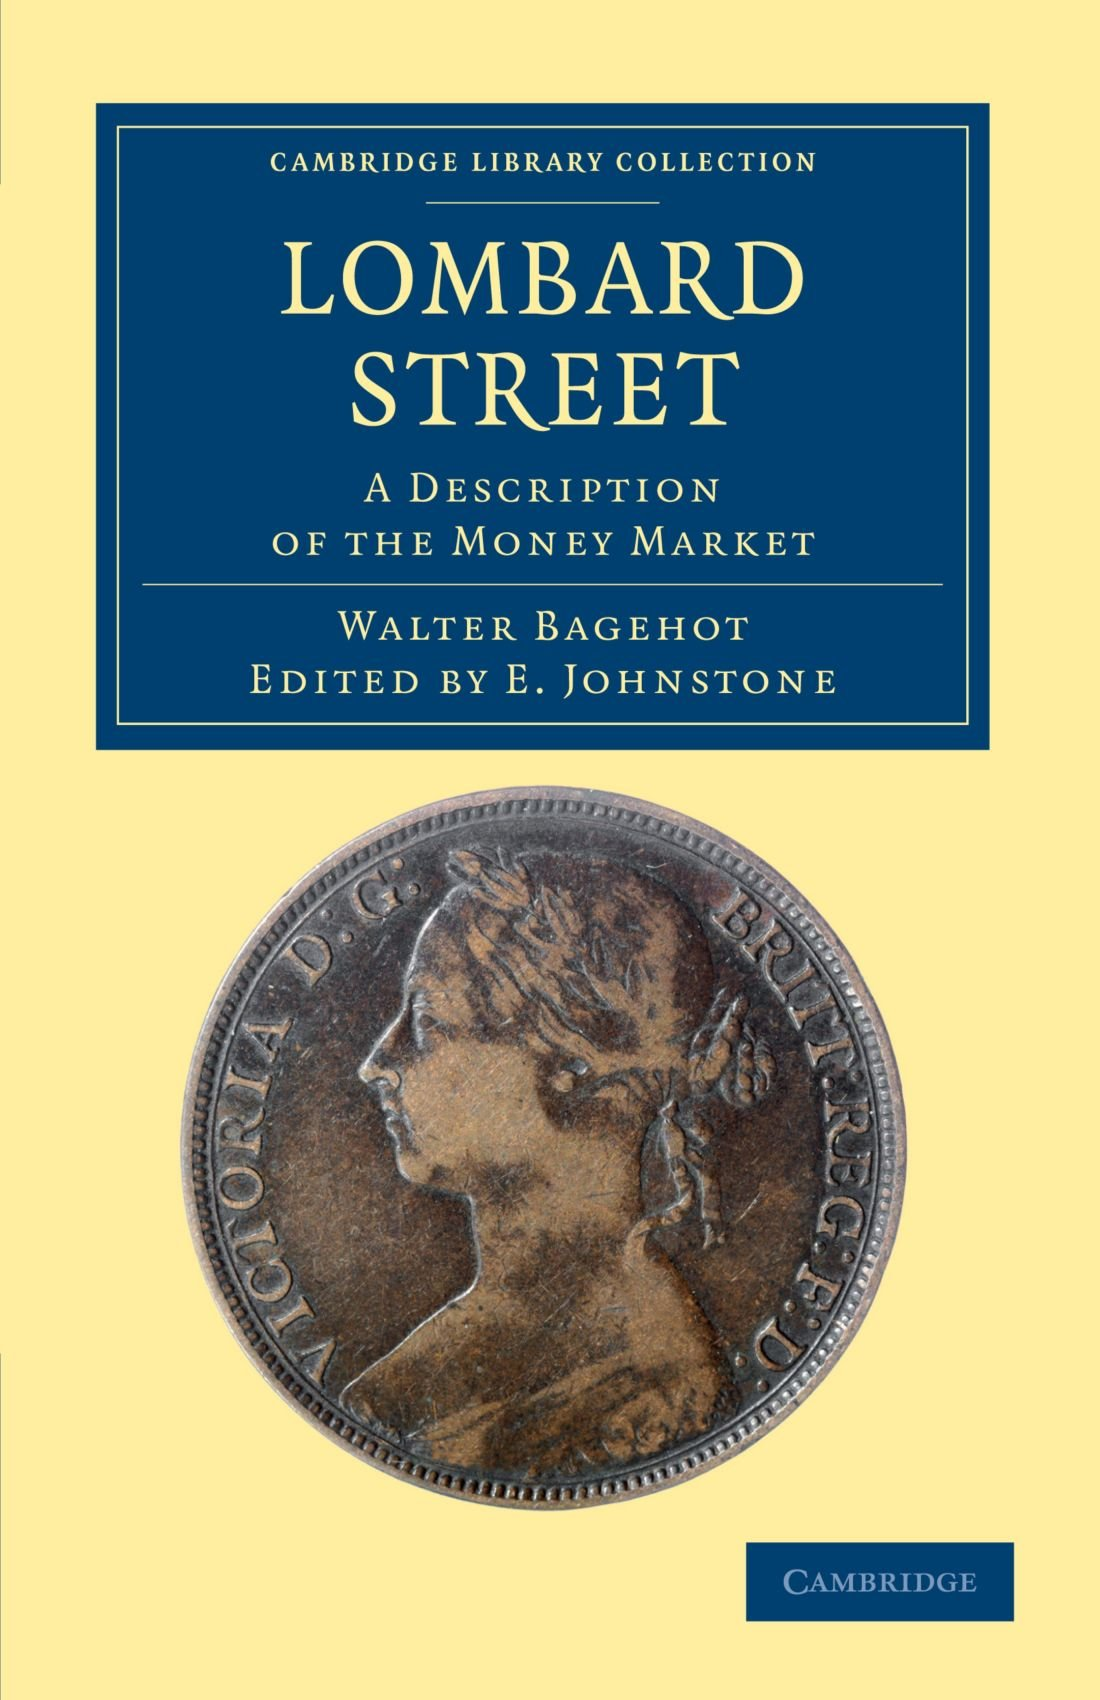 Lombard Street: A Description of the Money Market (Cambridge Library Collection - British and Irish History, 19th Century) pdf